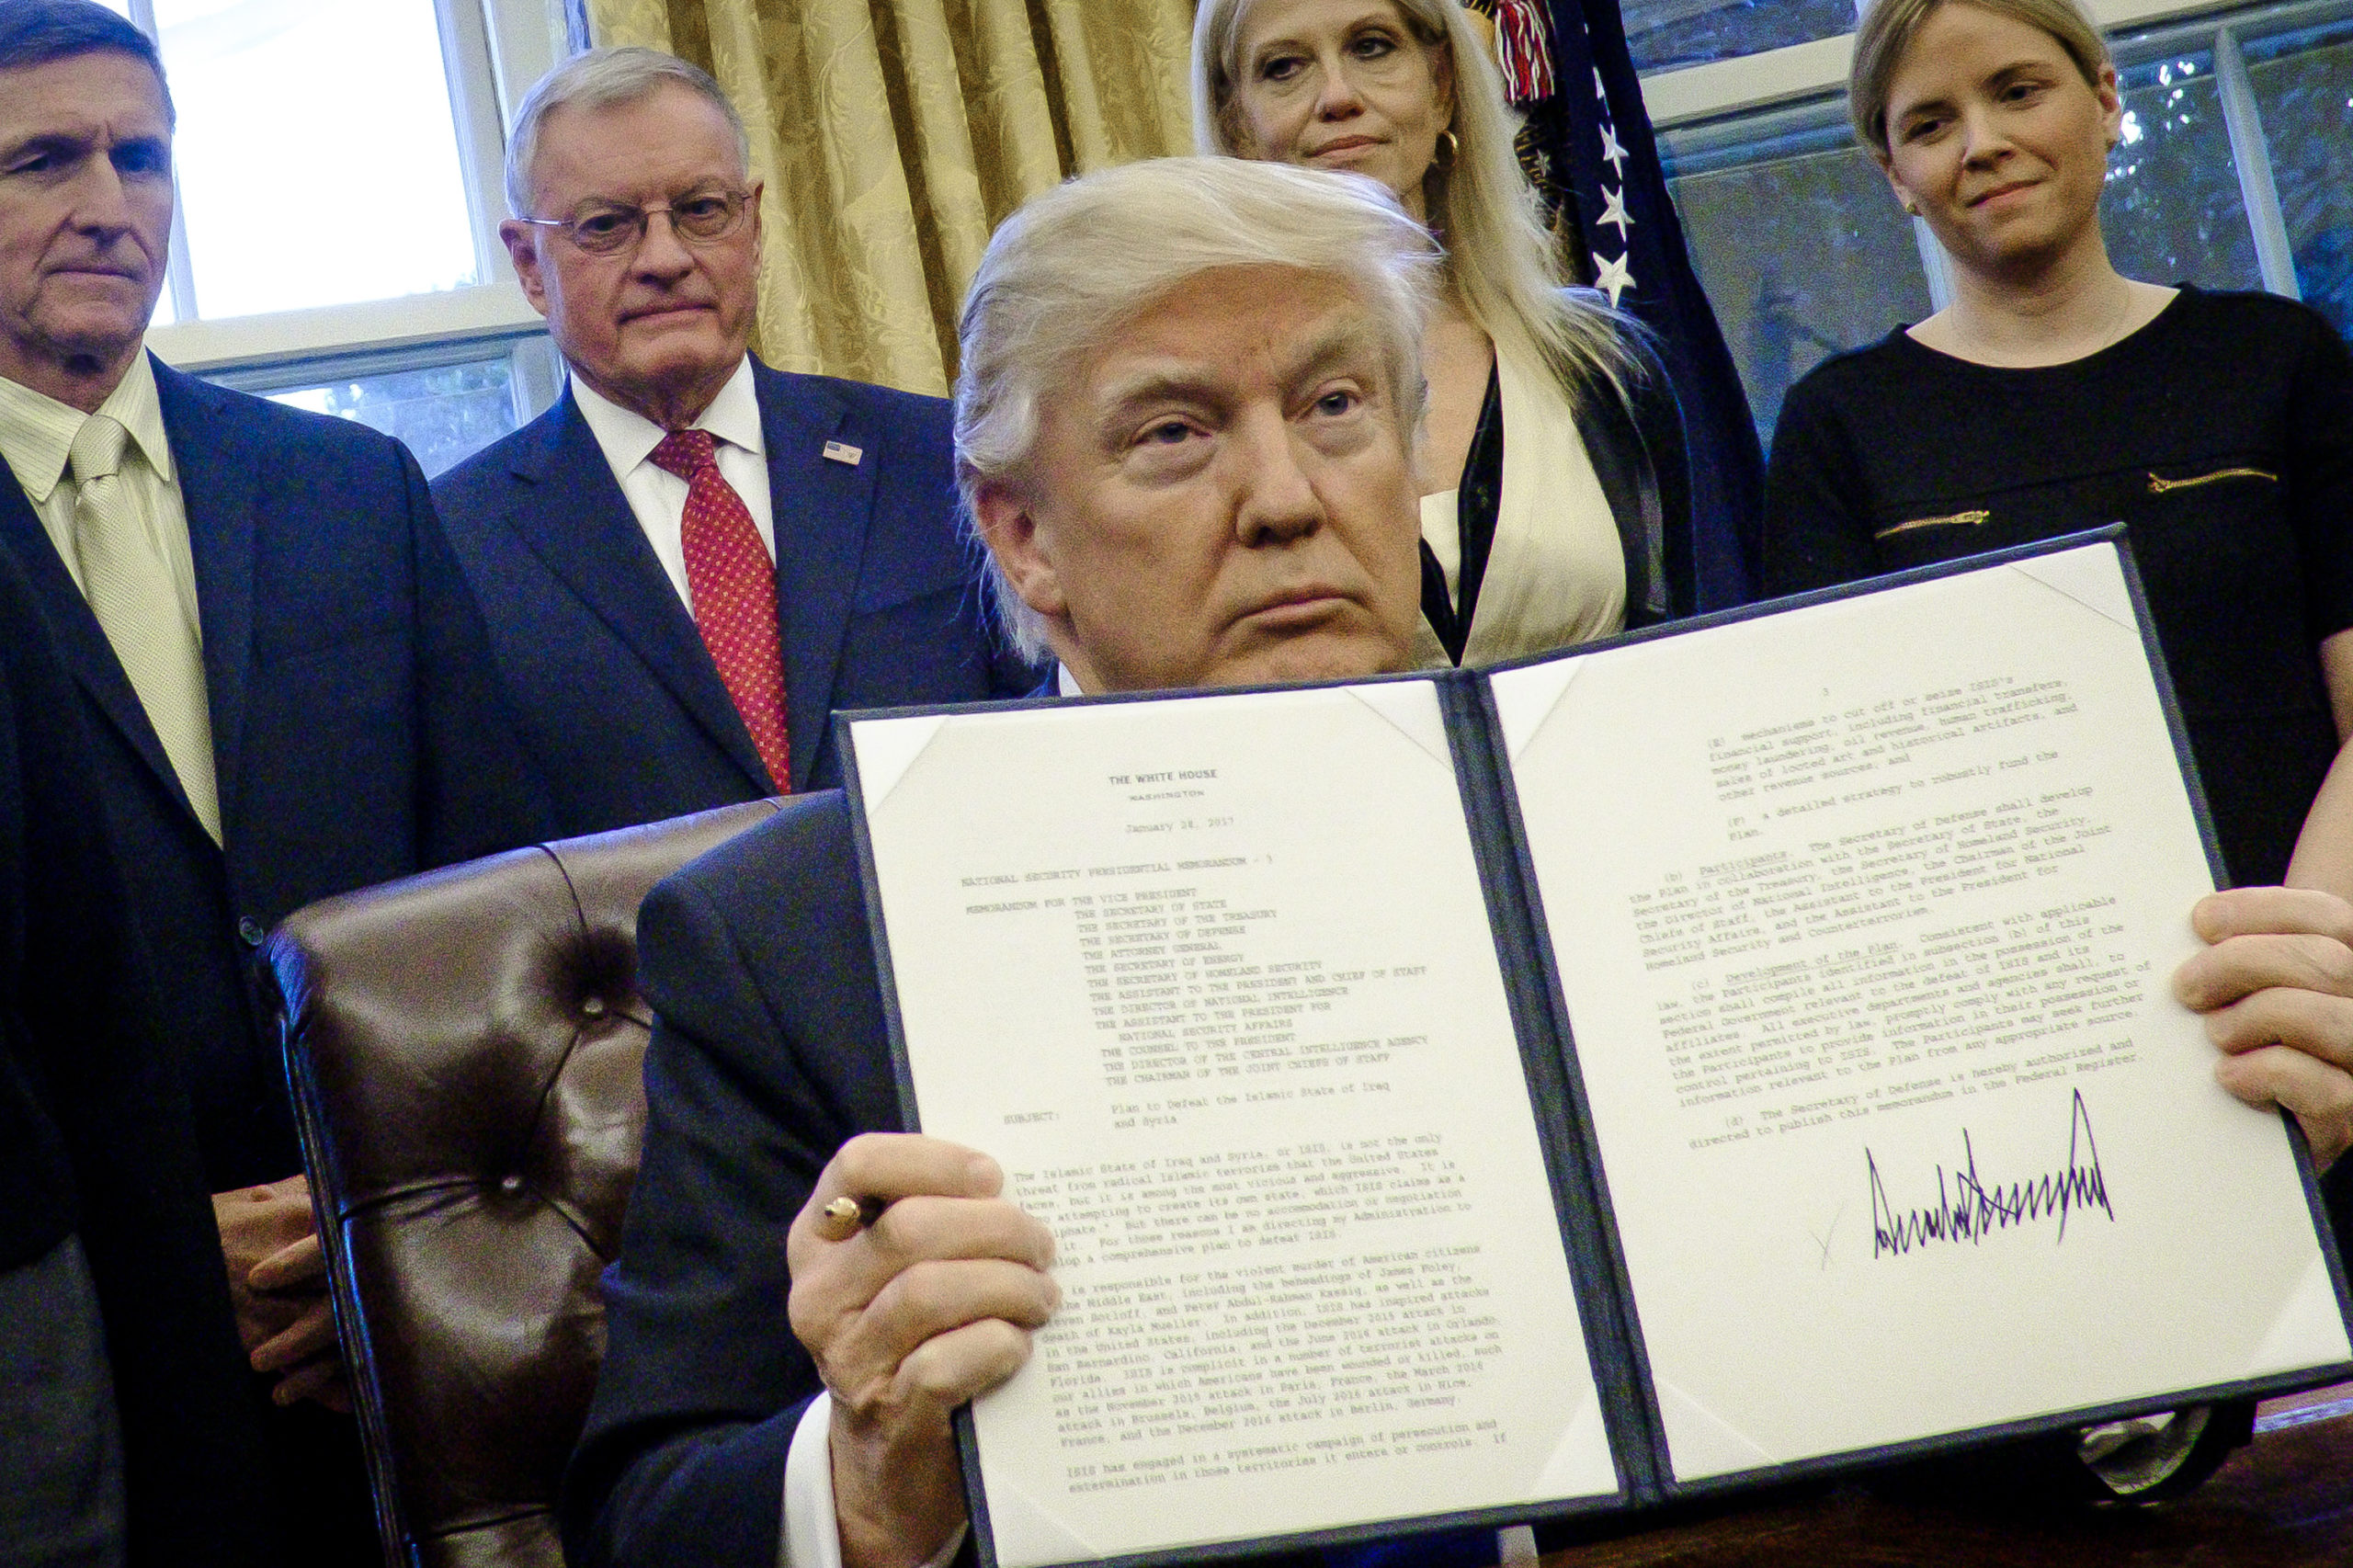 President Donald Trump holds up his executive order restricting lobbying in the Oval Office on Jan. 28, 2017. (Pete Marovich/Pool/Getty Images)